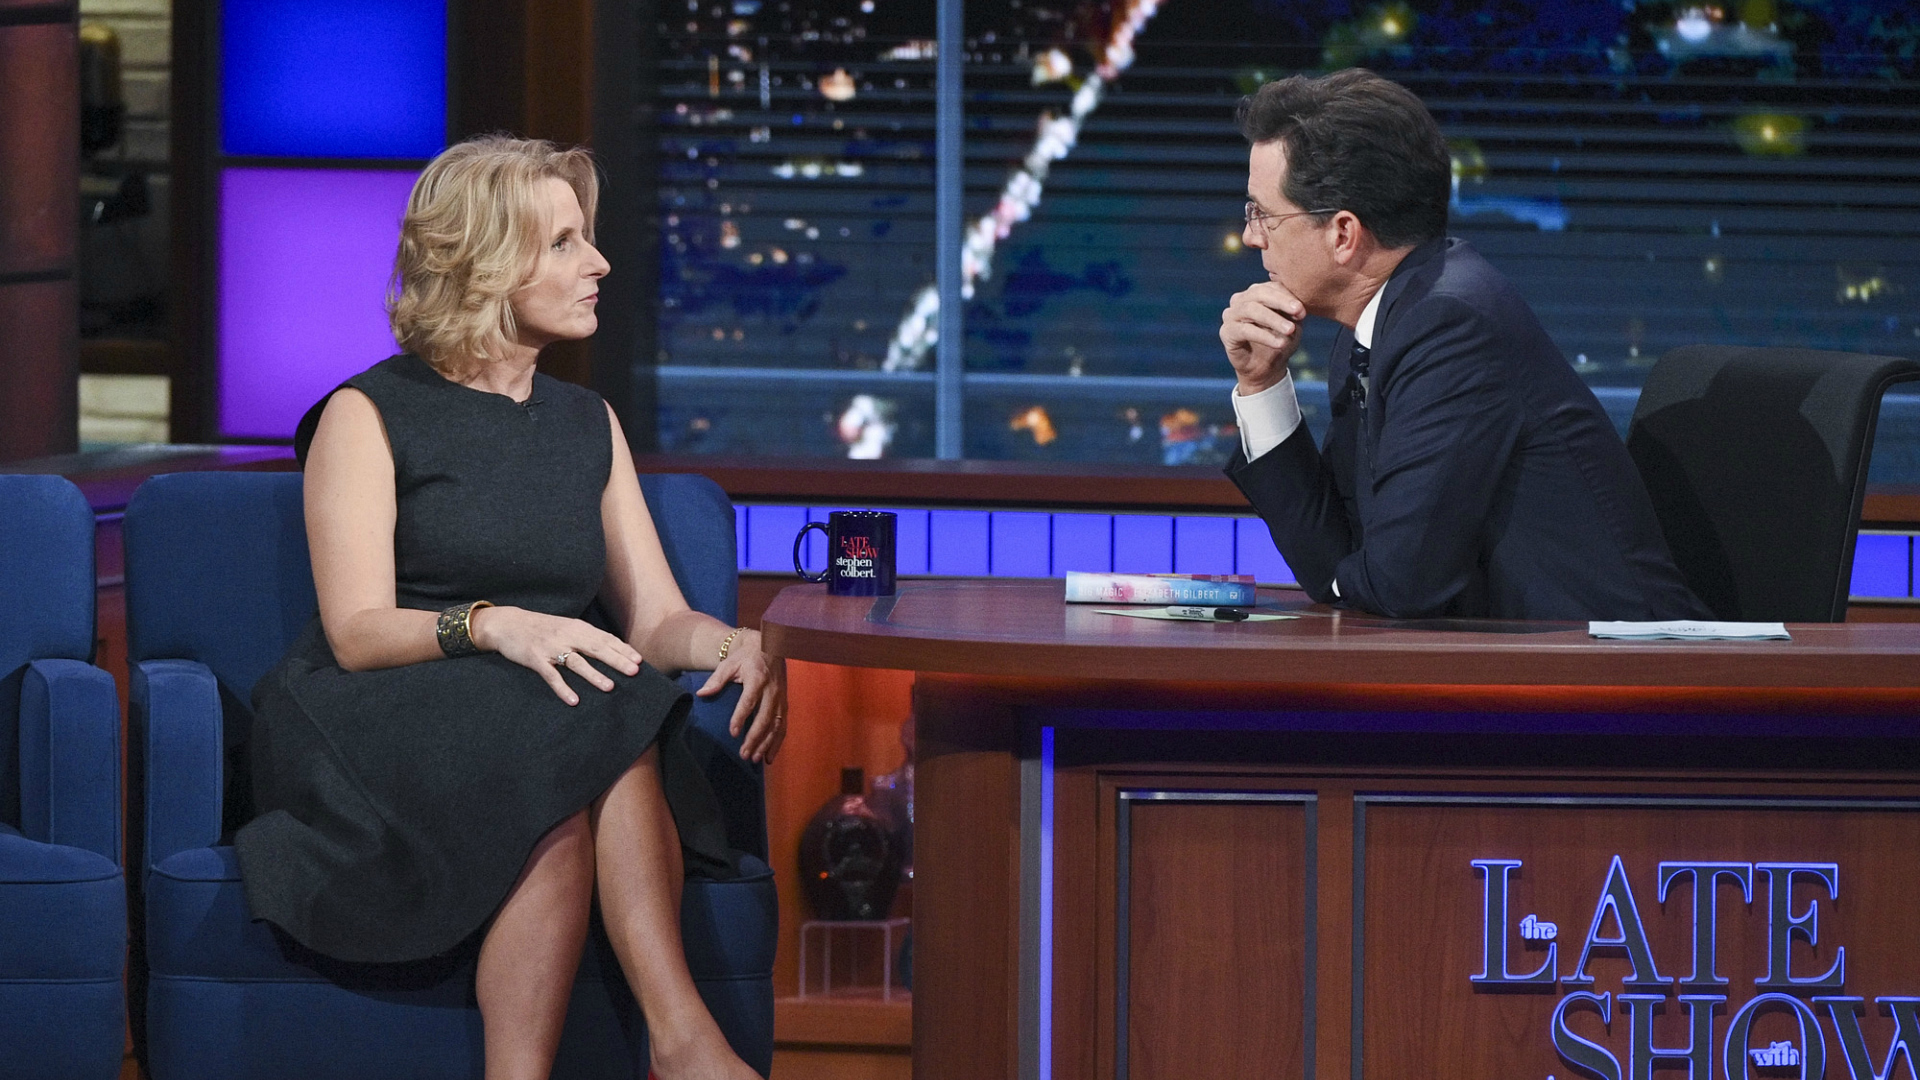 Elizabeth Gilbert and Stephen Colbert